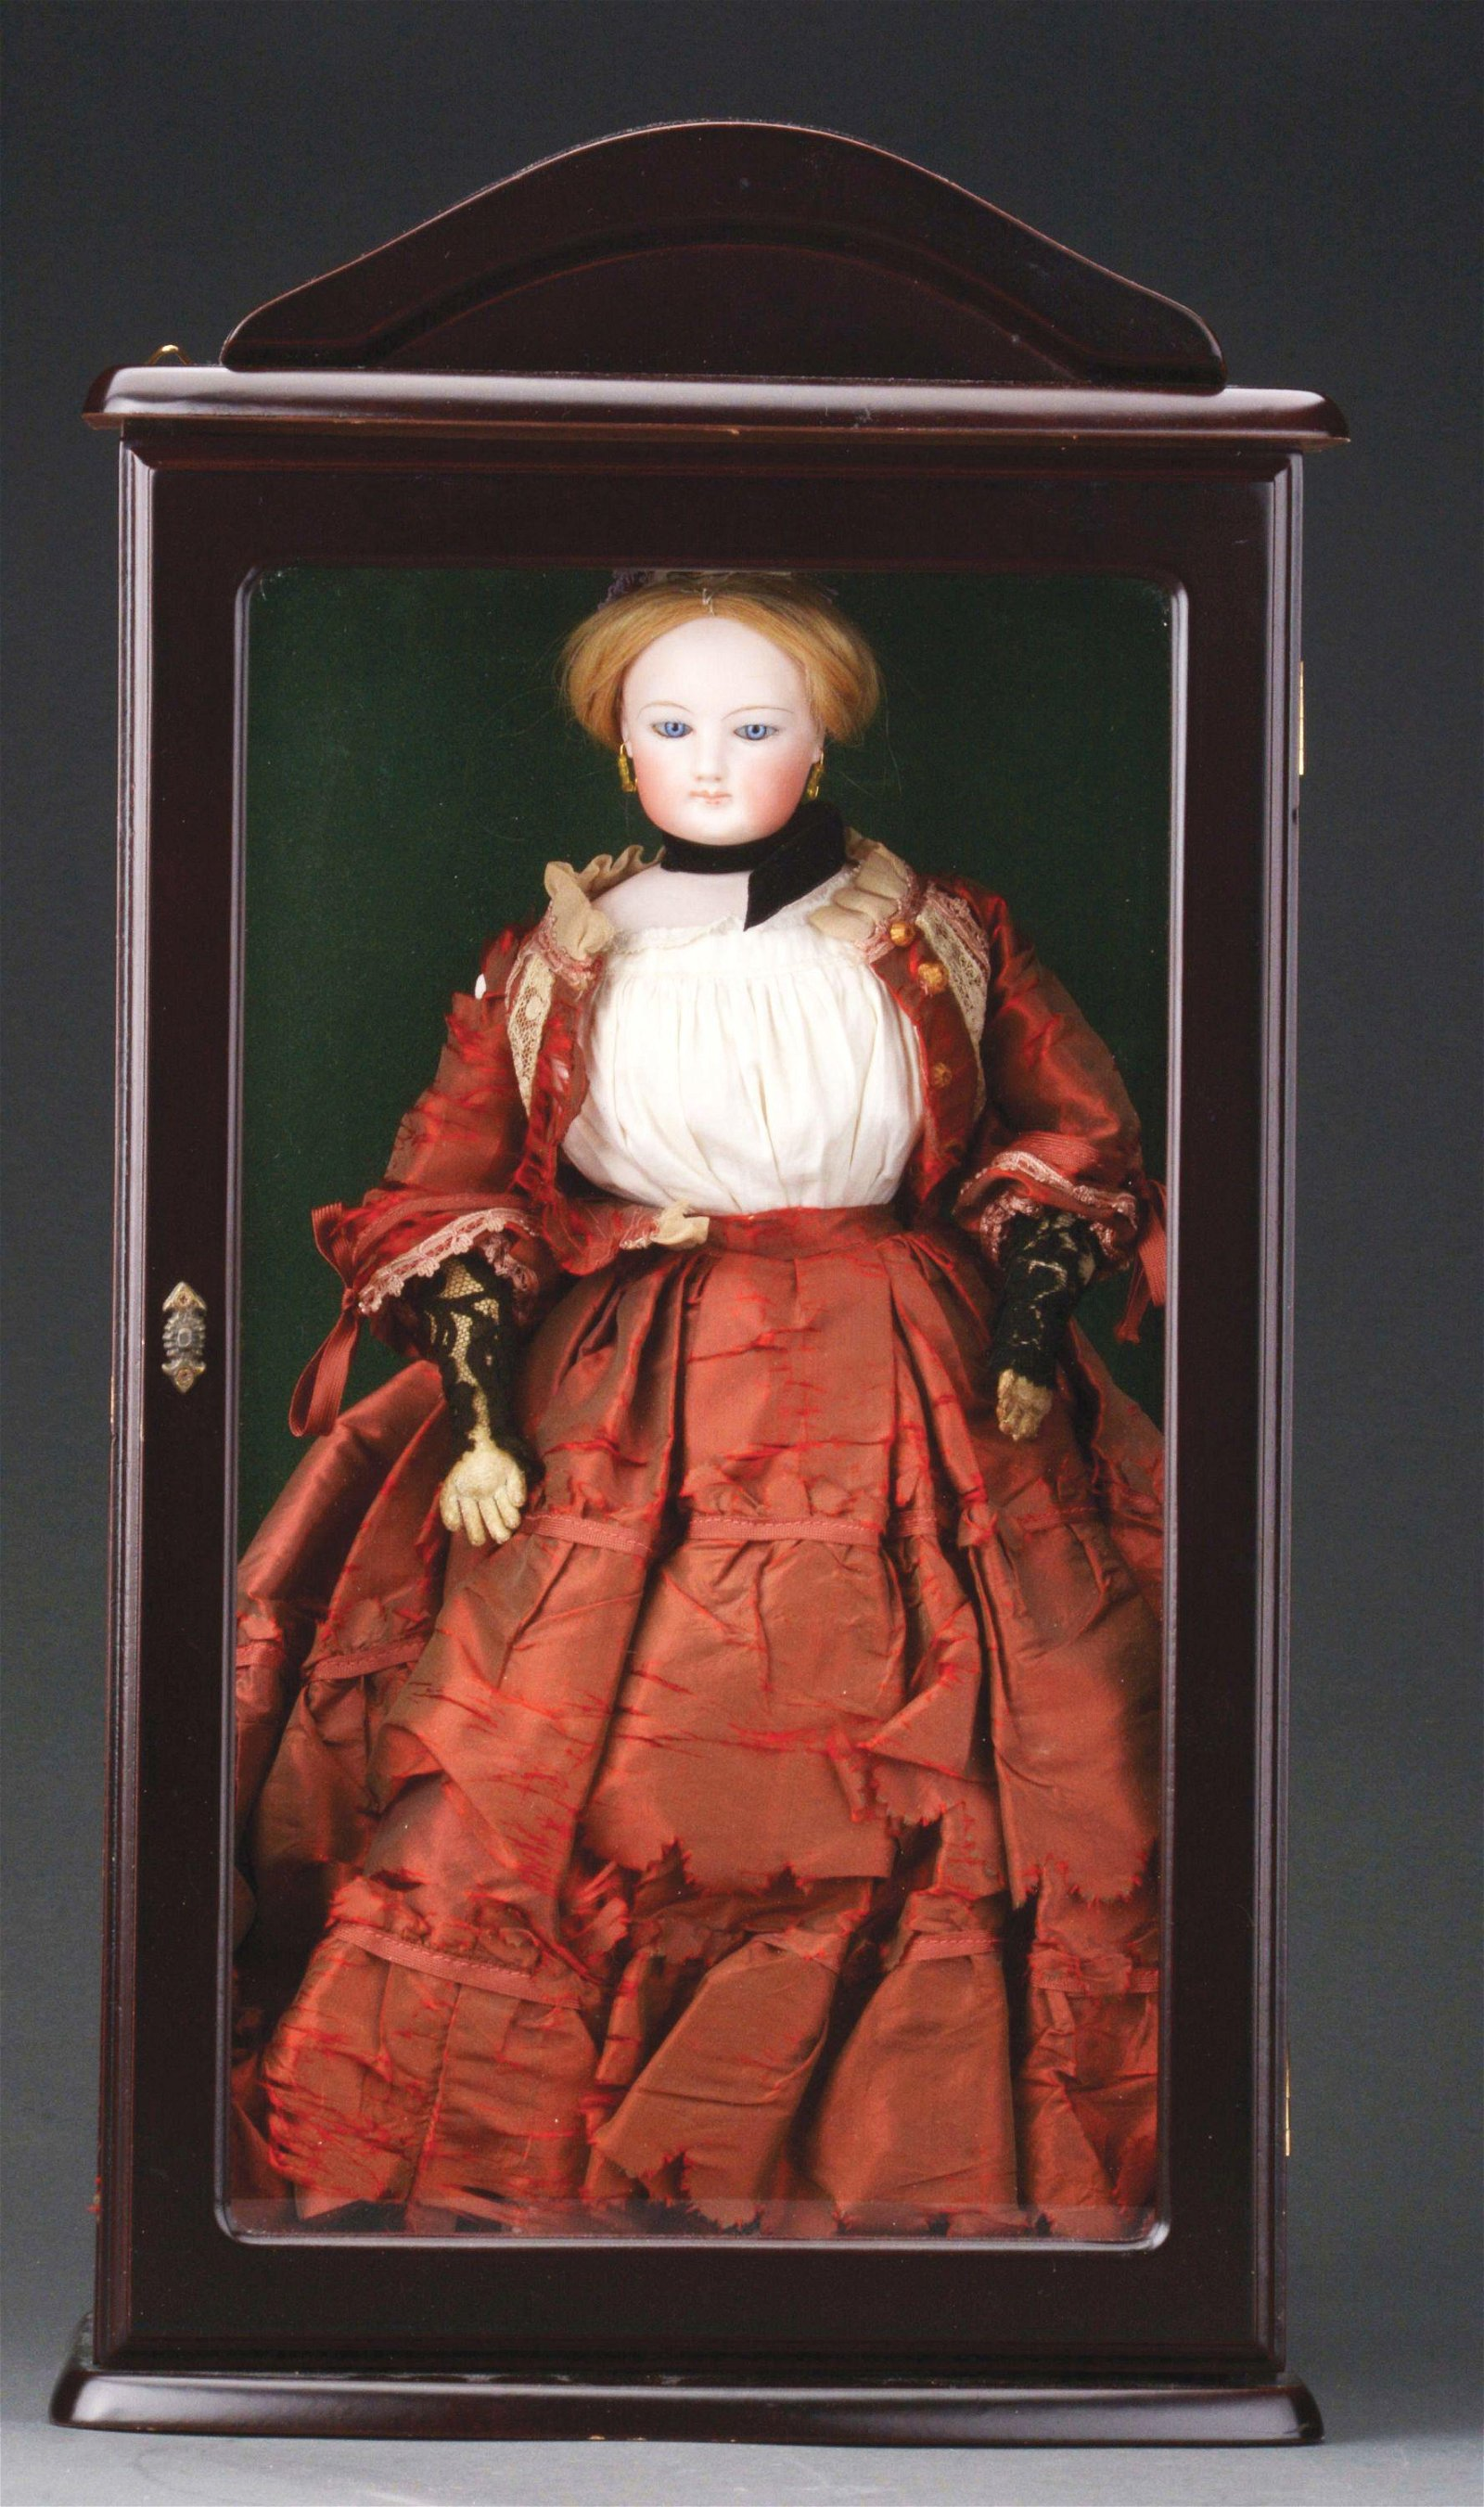 FRENCH FASHION DOLL IN WOODEN GLASS-FRONTED DISPLAY